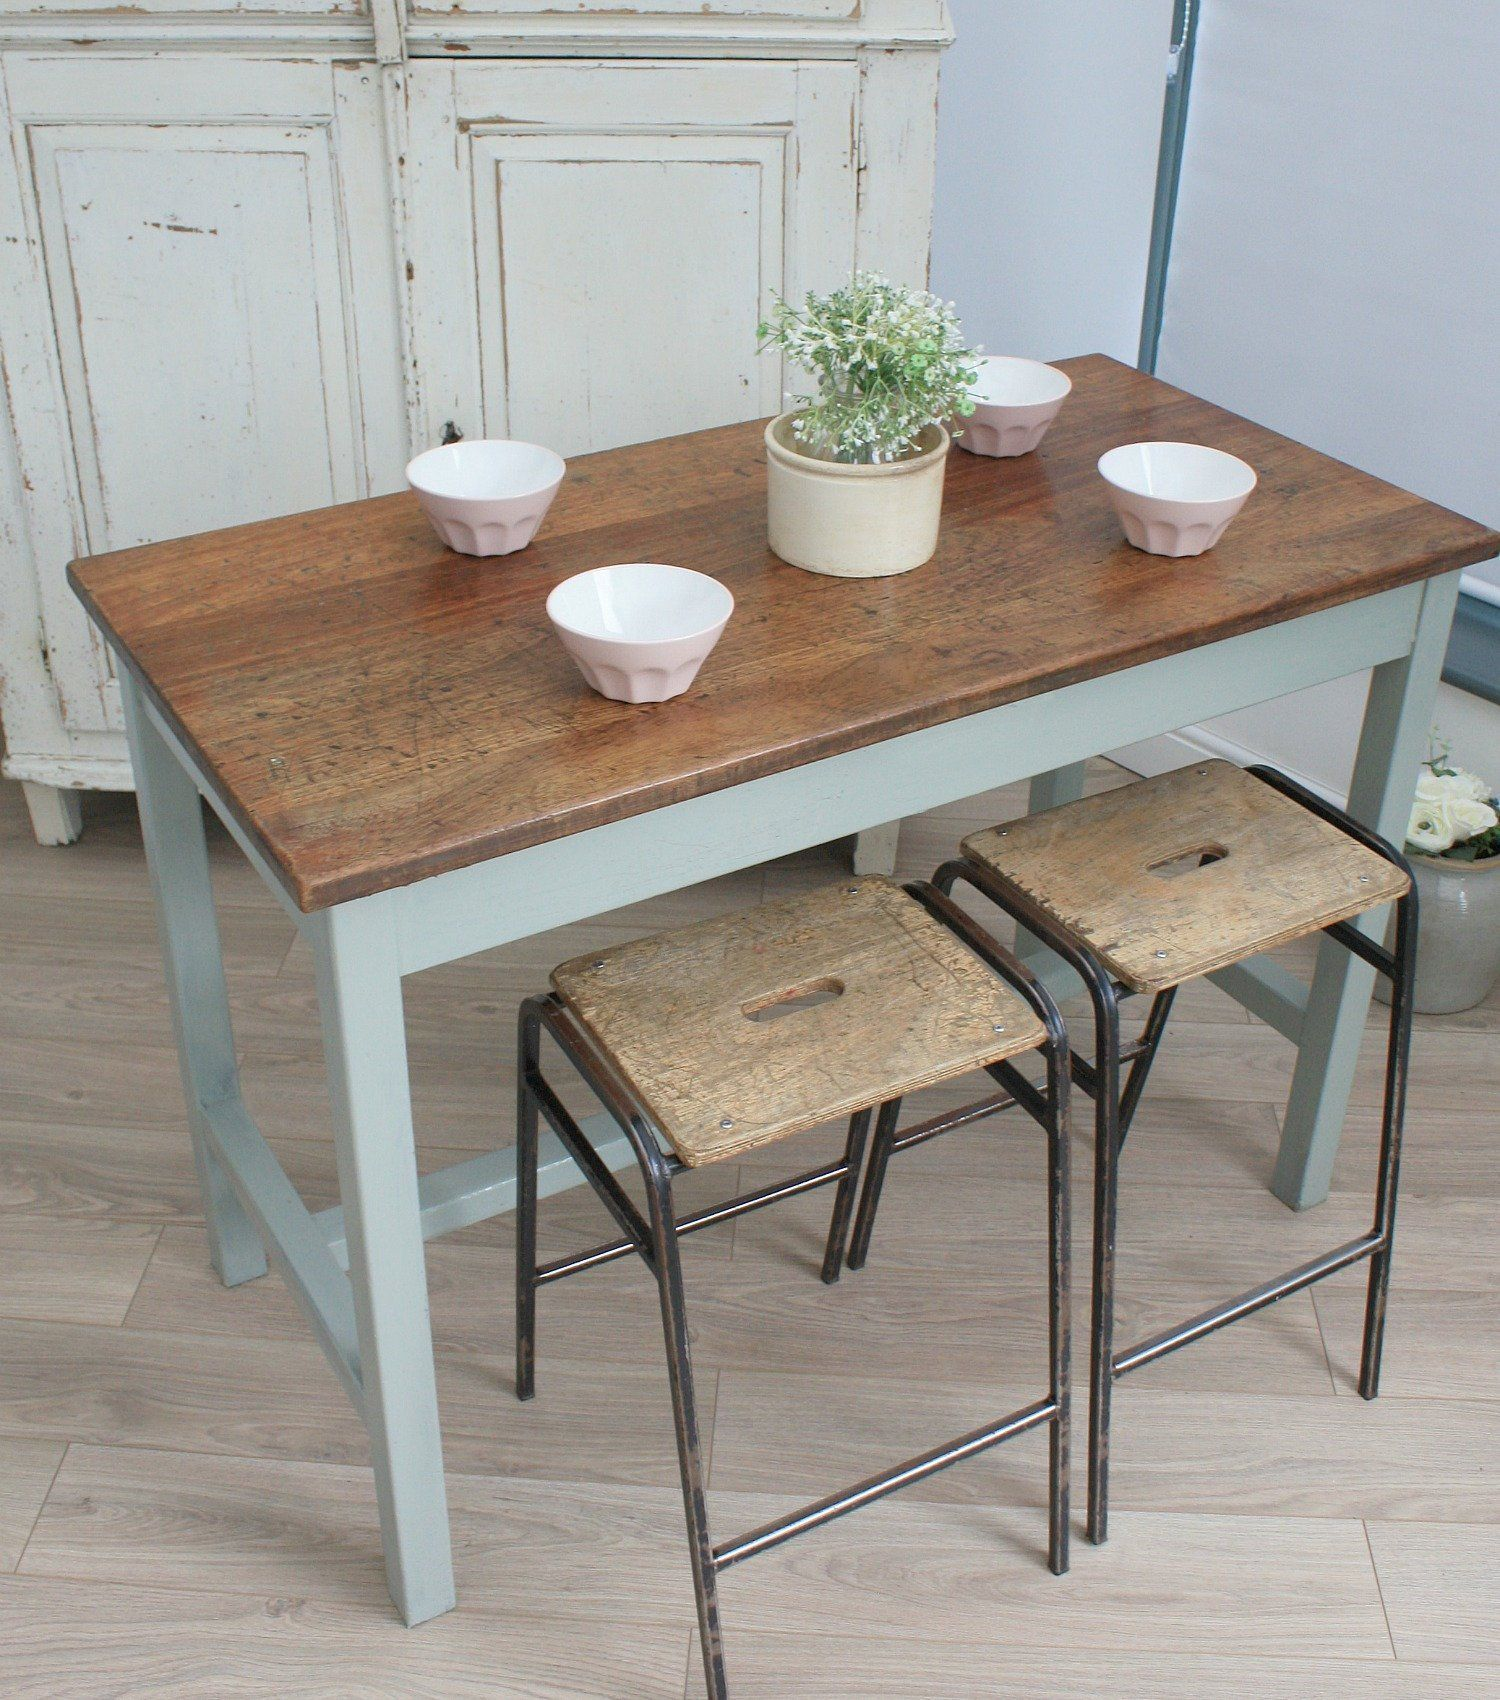 prodigious useful ideas painted dining furniture farmhouse style rh pinterest com